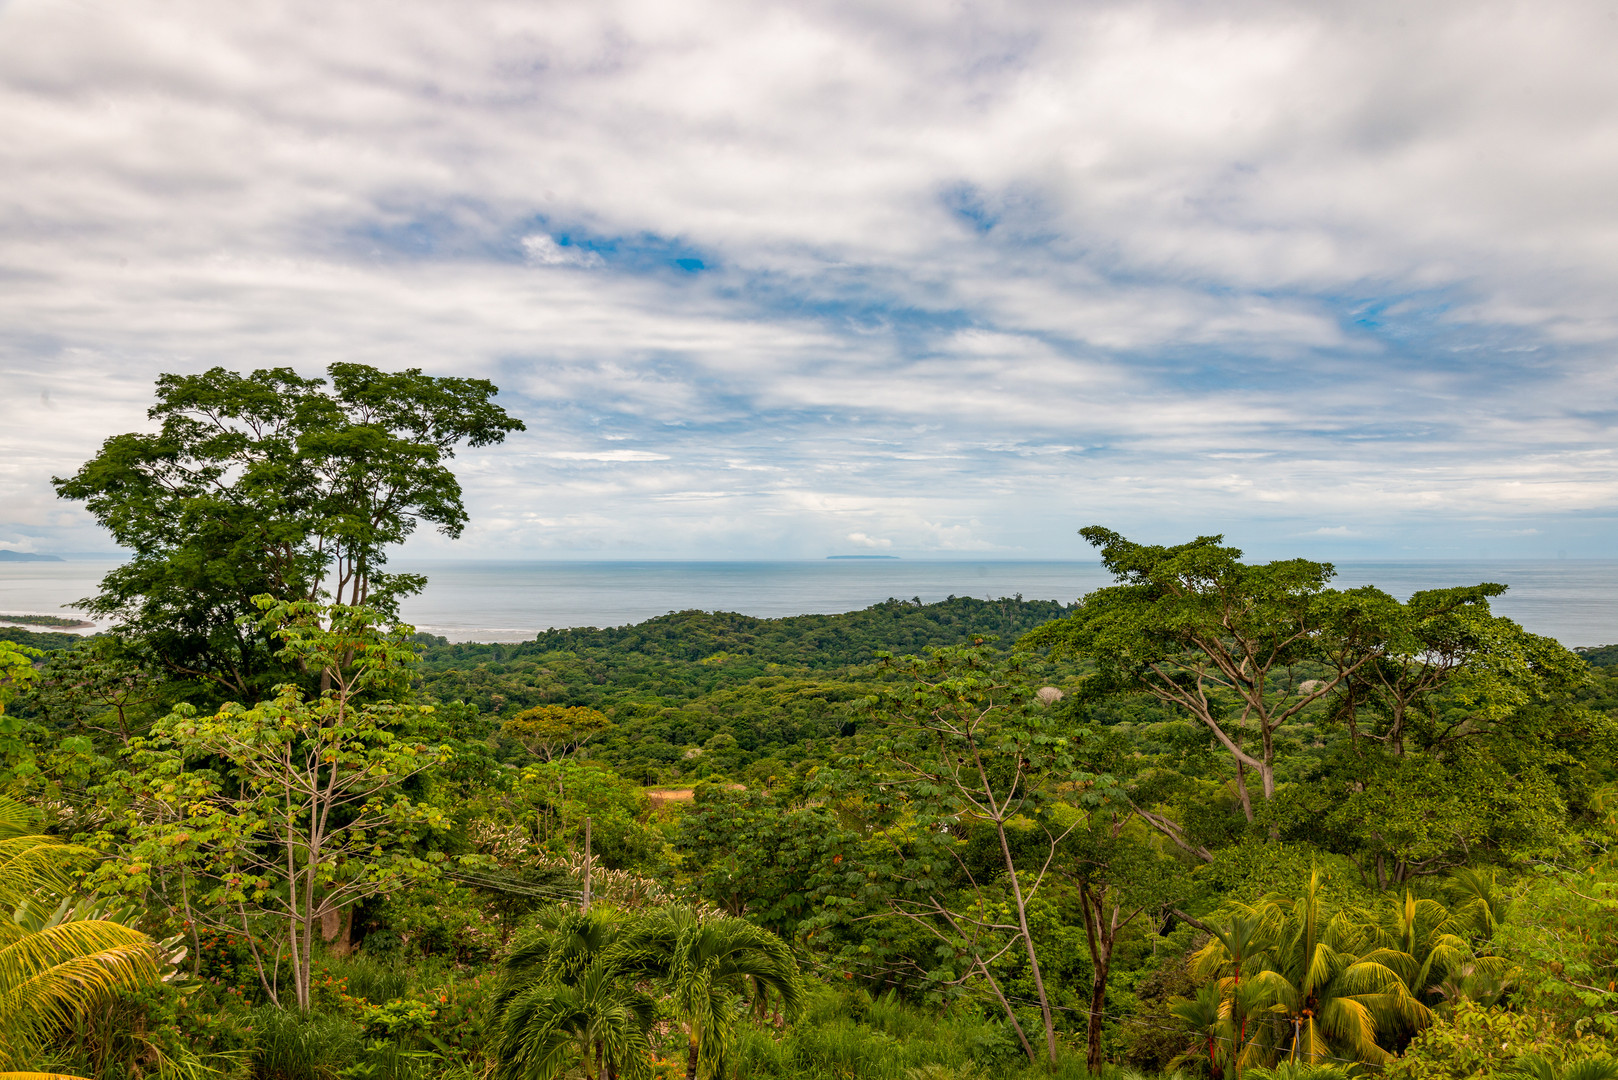 Beautiful views of the oceans and jungle